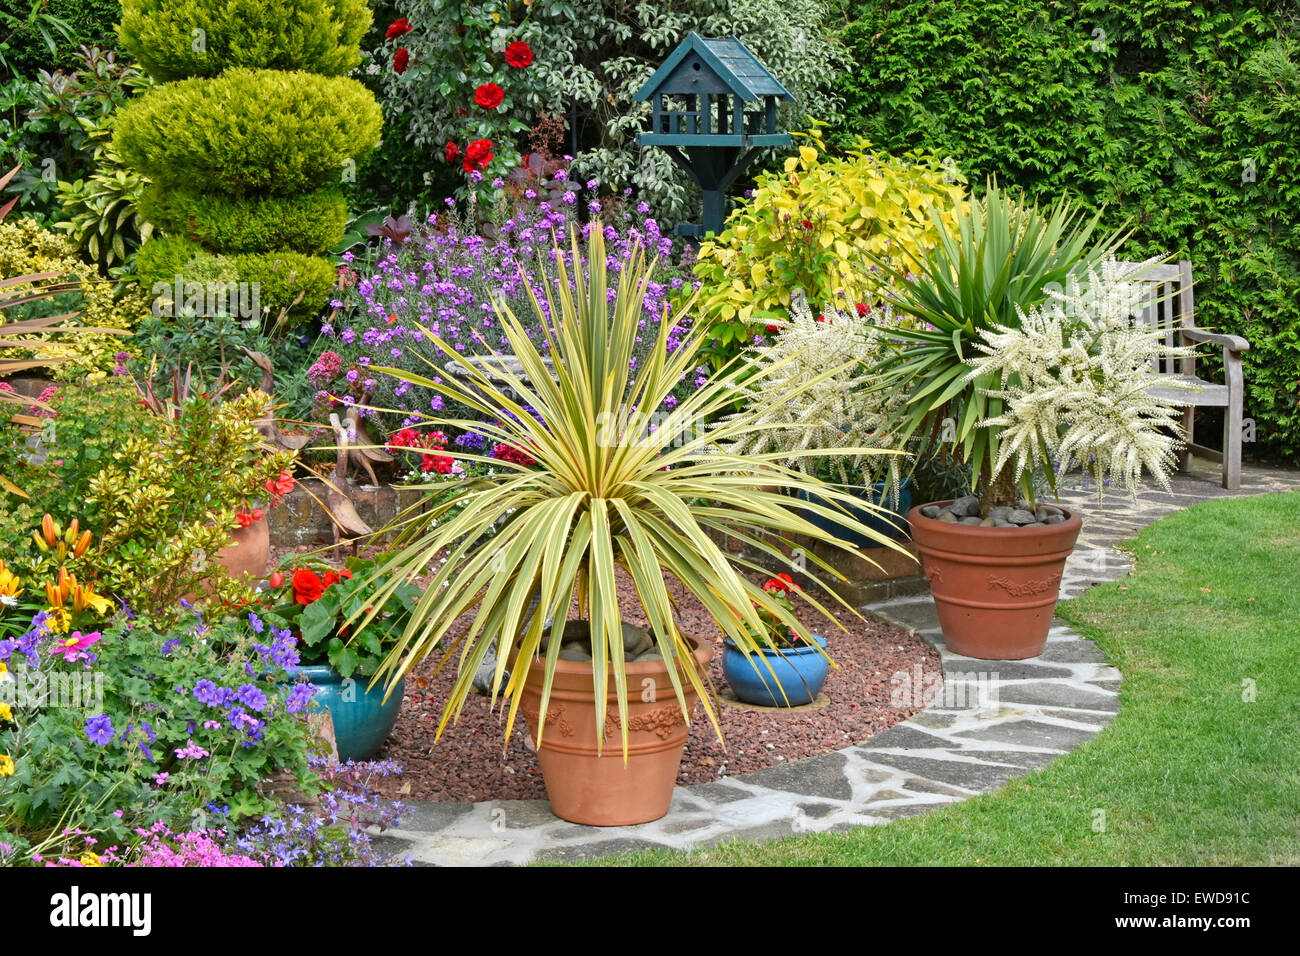 Back Garden Mixed Planting For Colour Effect Potted Plants For